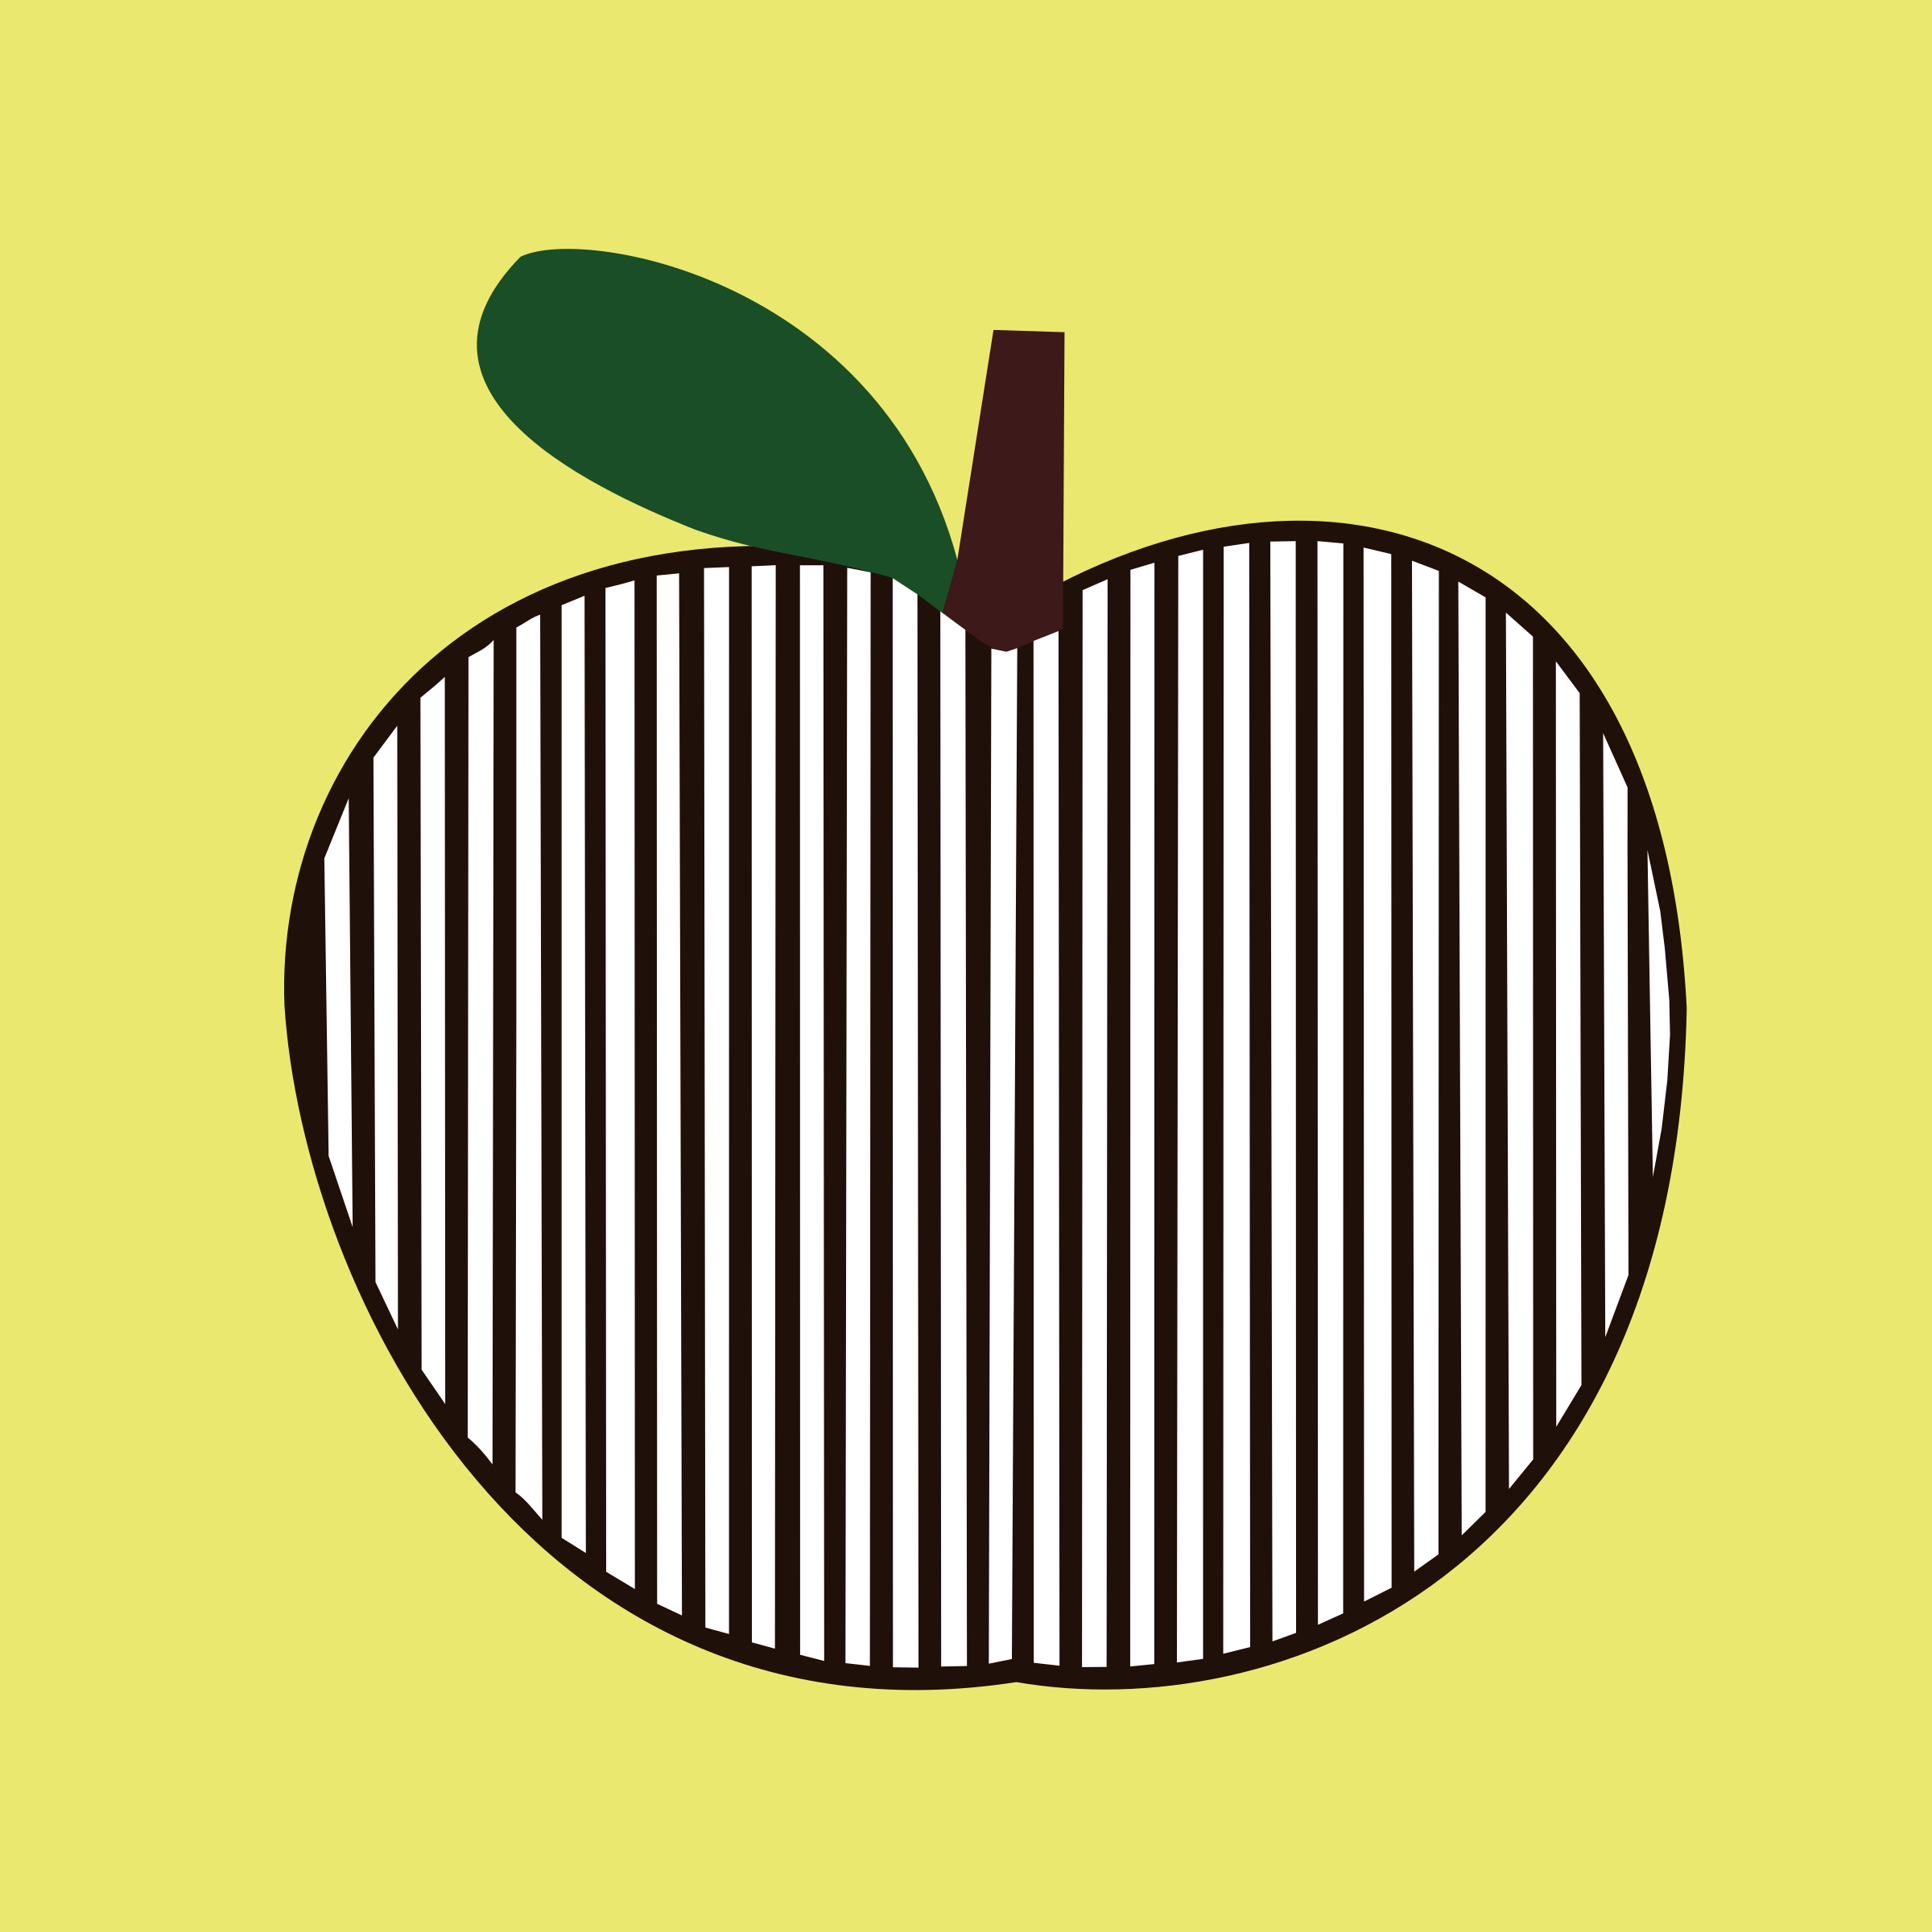 Apple clipart boy with BIG (PNG) striped apple IMAGE